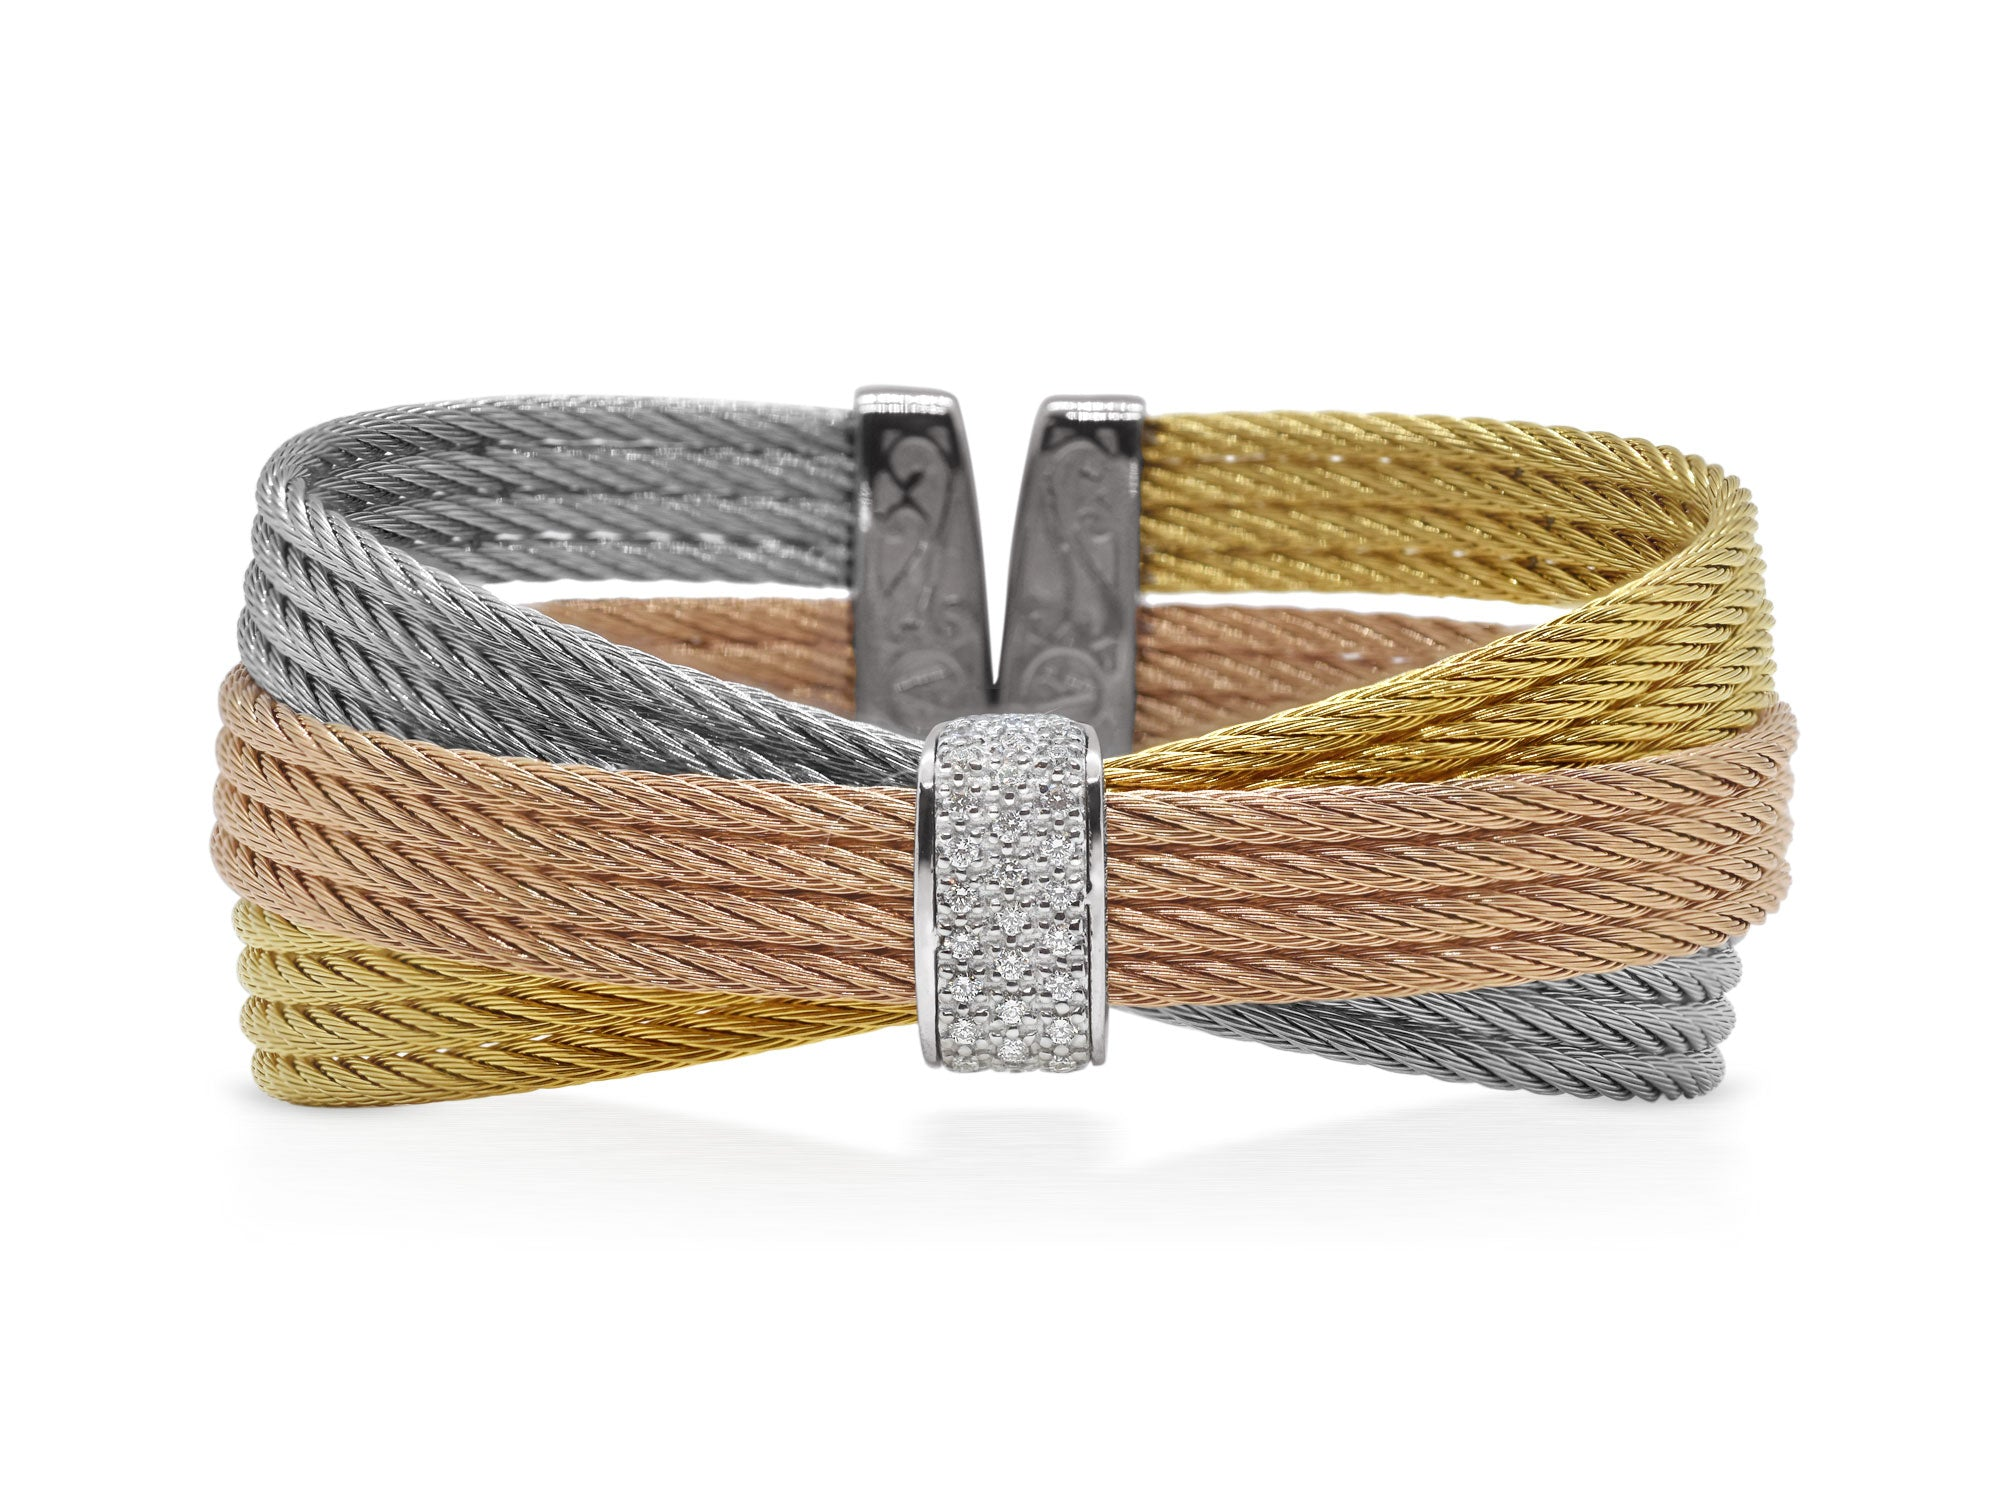 ALOR Classique Multi-Strand, Gold, Rose, and Grey Cable Bangle with Angled Design